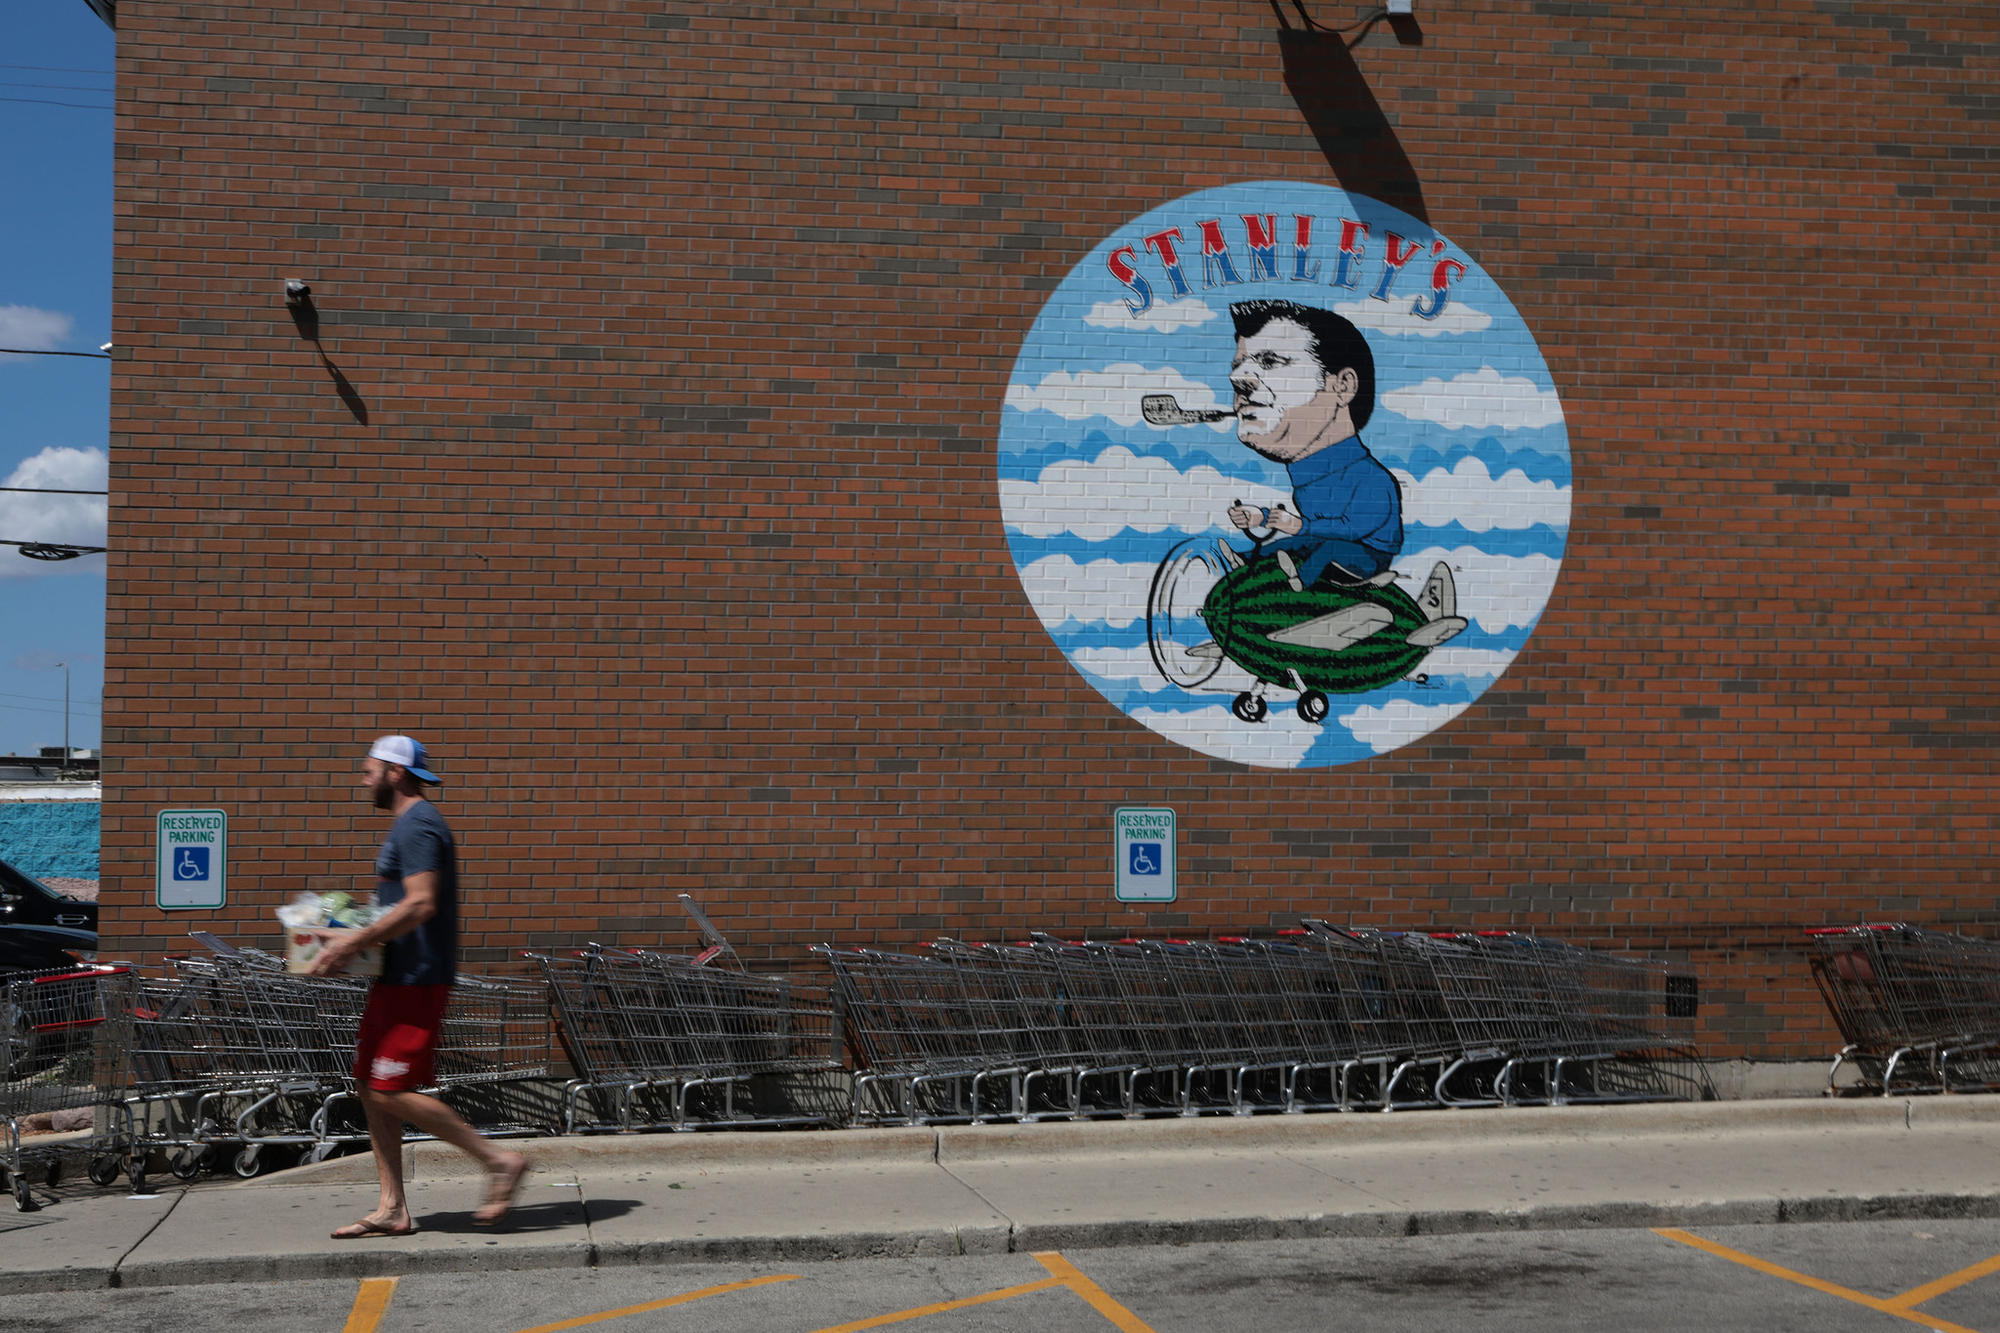 stanley s fresh fruits vegetables to sell property as north side